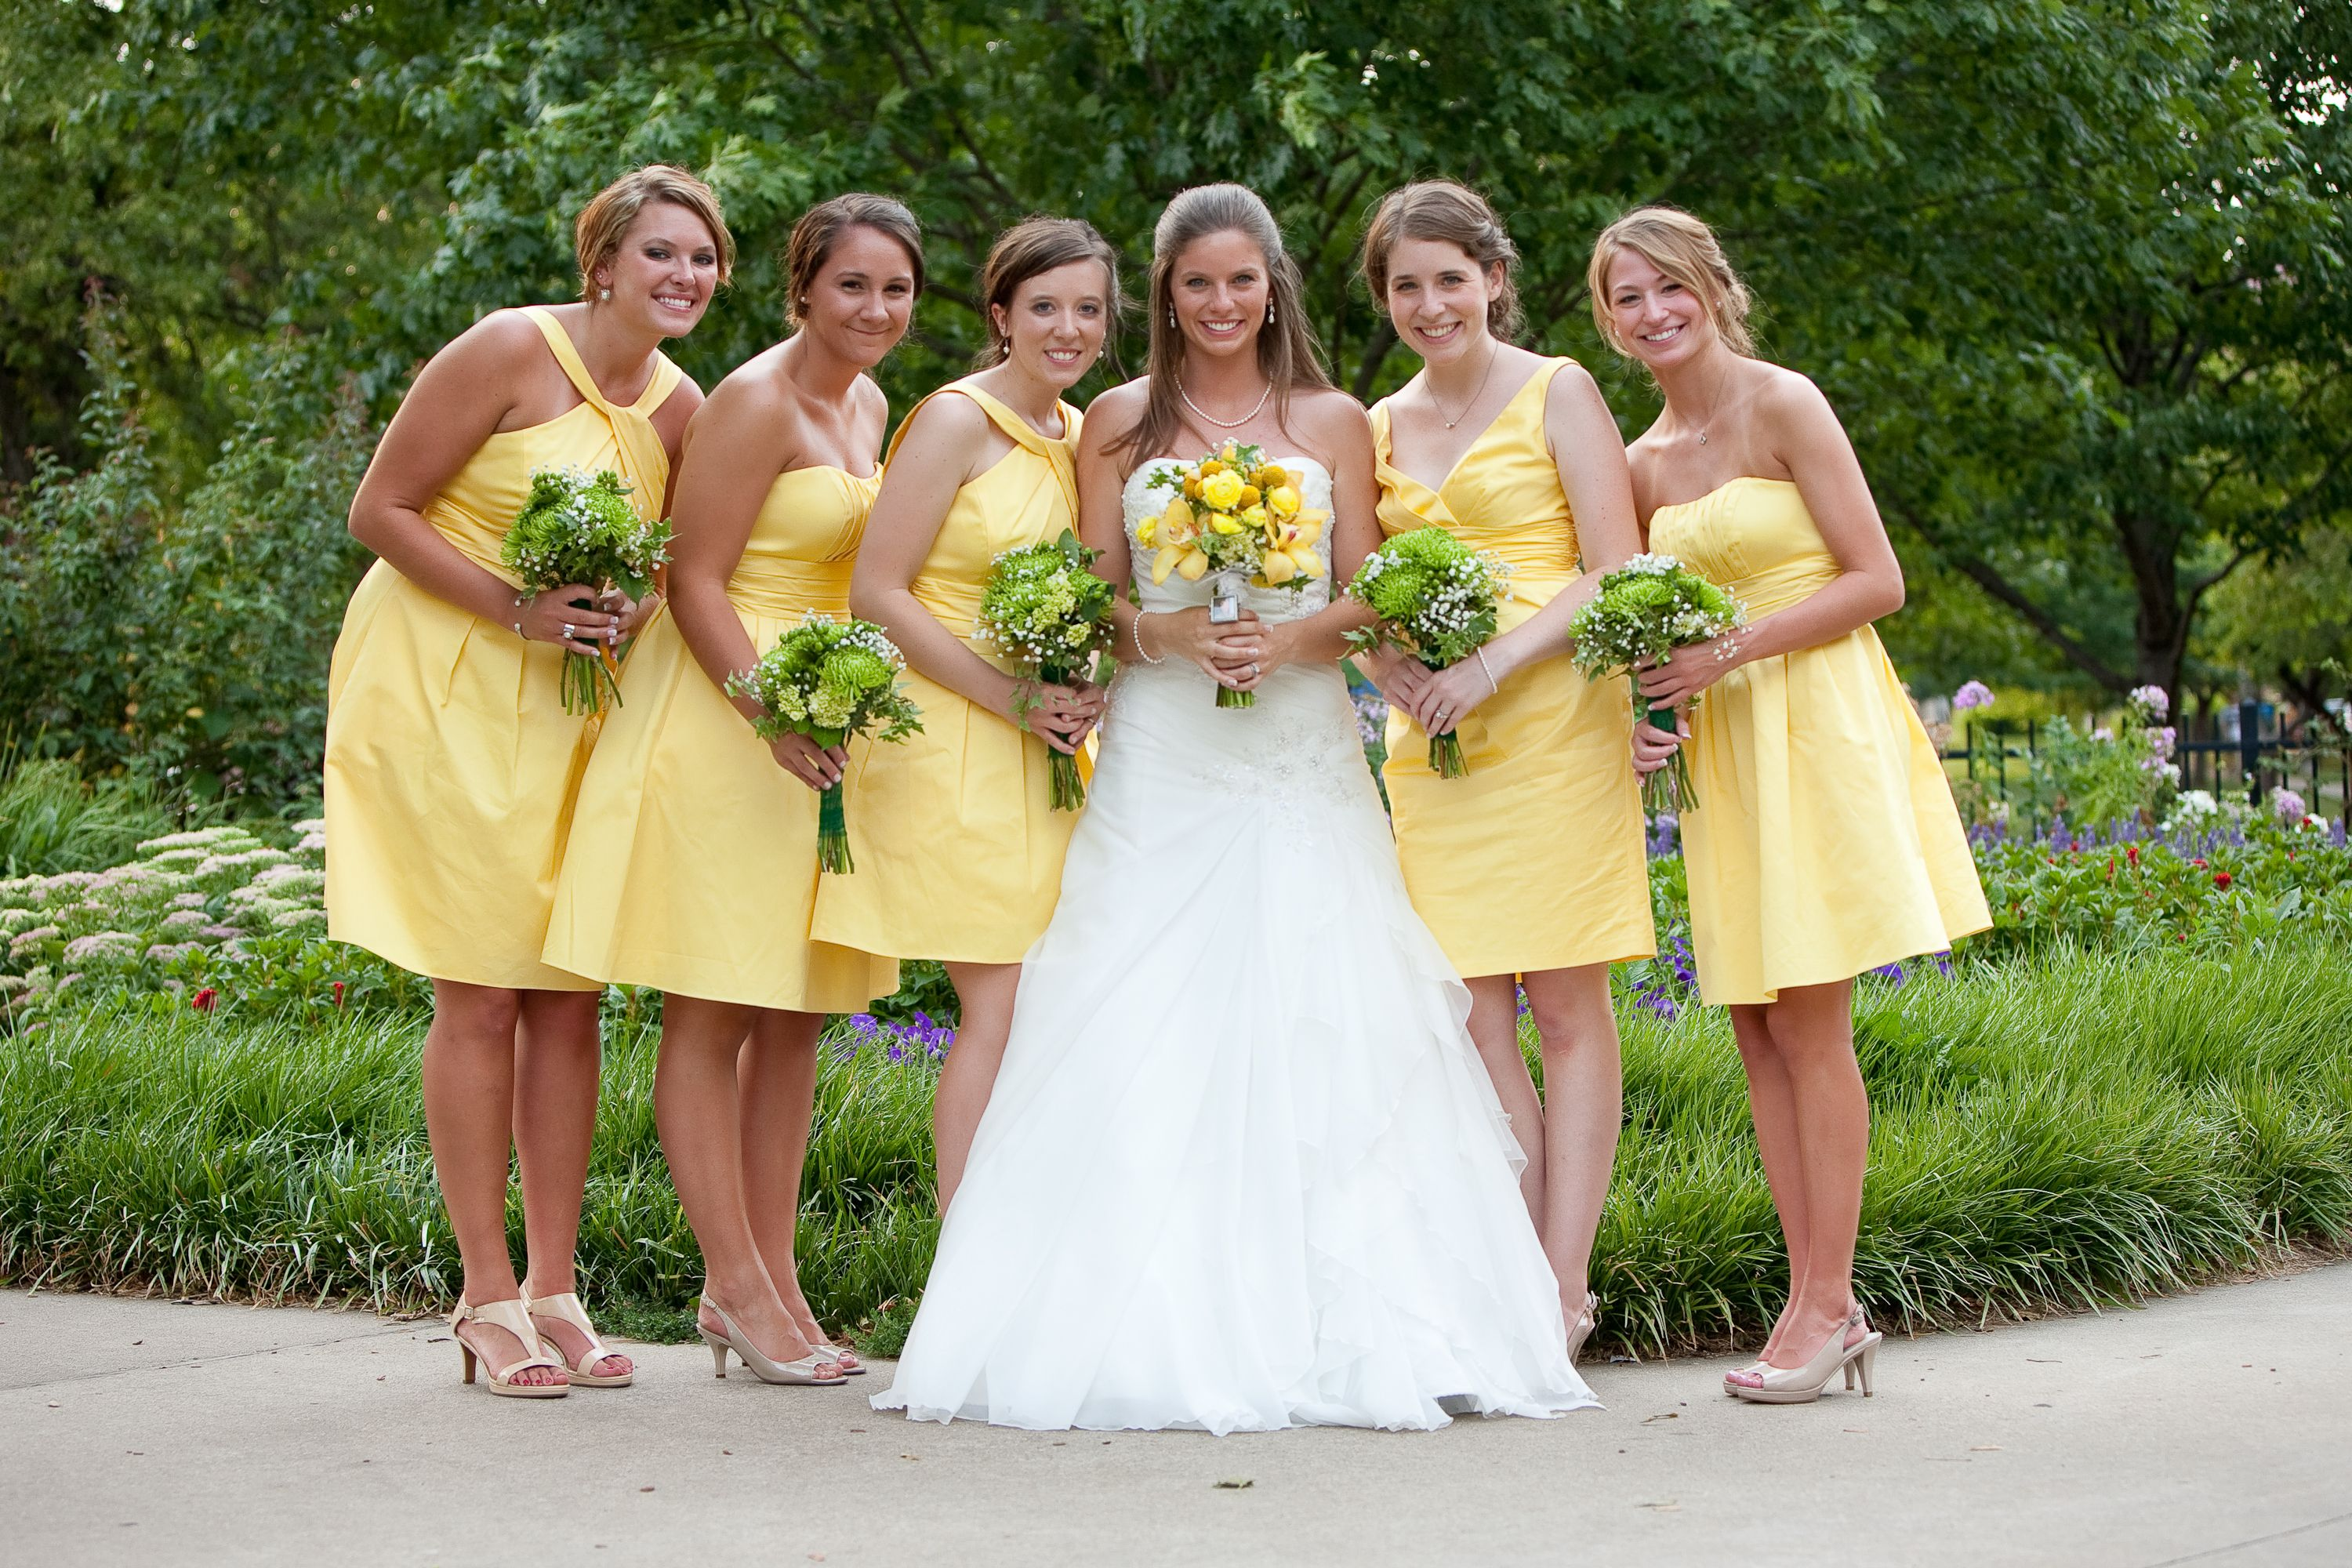 Bridesmaids my bridesmaids wore bright yellow dresses with nude bridesmaids my bridesmaids wore bright yellow dresses with nude heels and carried lime green flowers ombrellifo Gallery